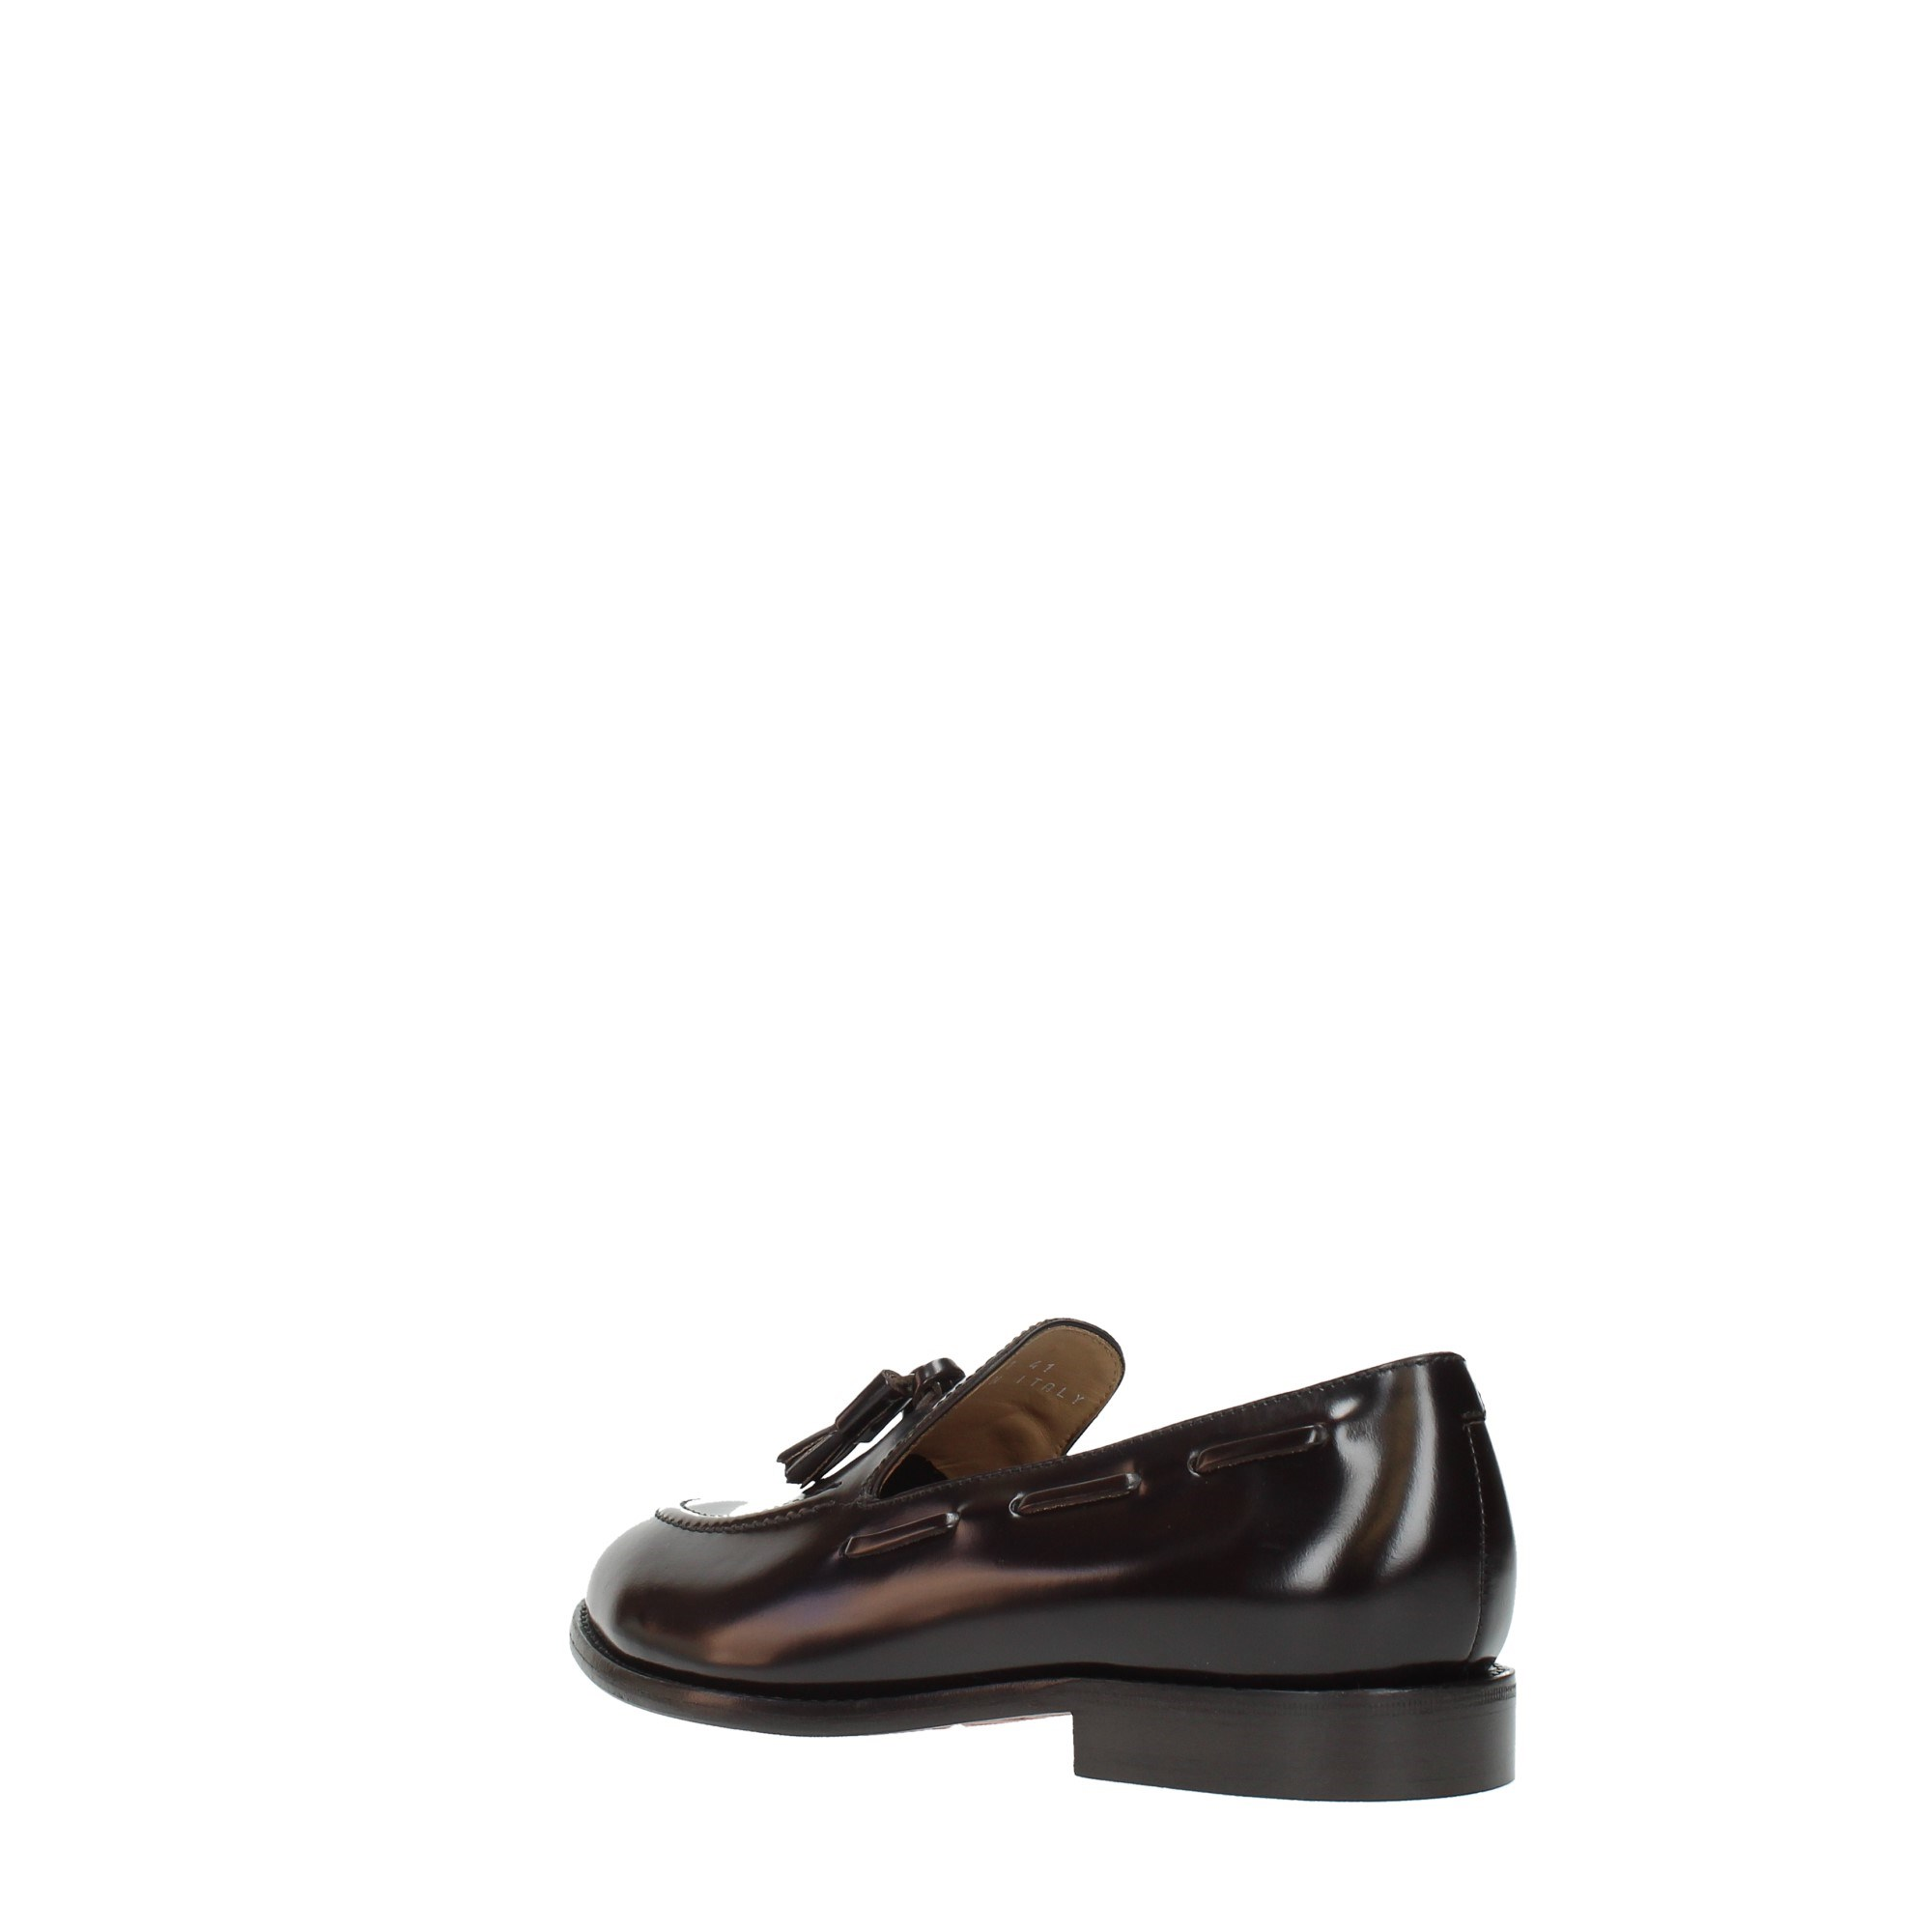 Lo.white Shoes Man Moccasins And Slippers Black 29001